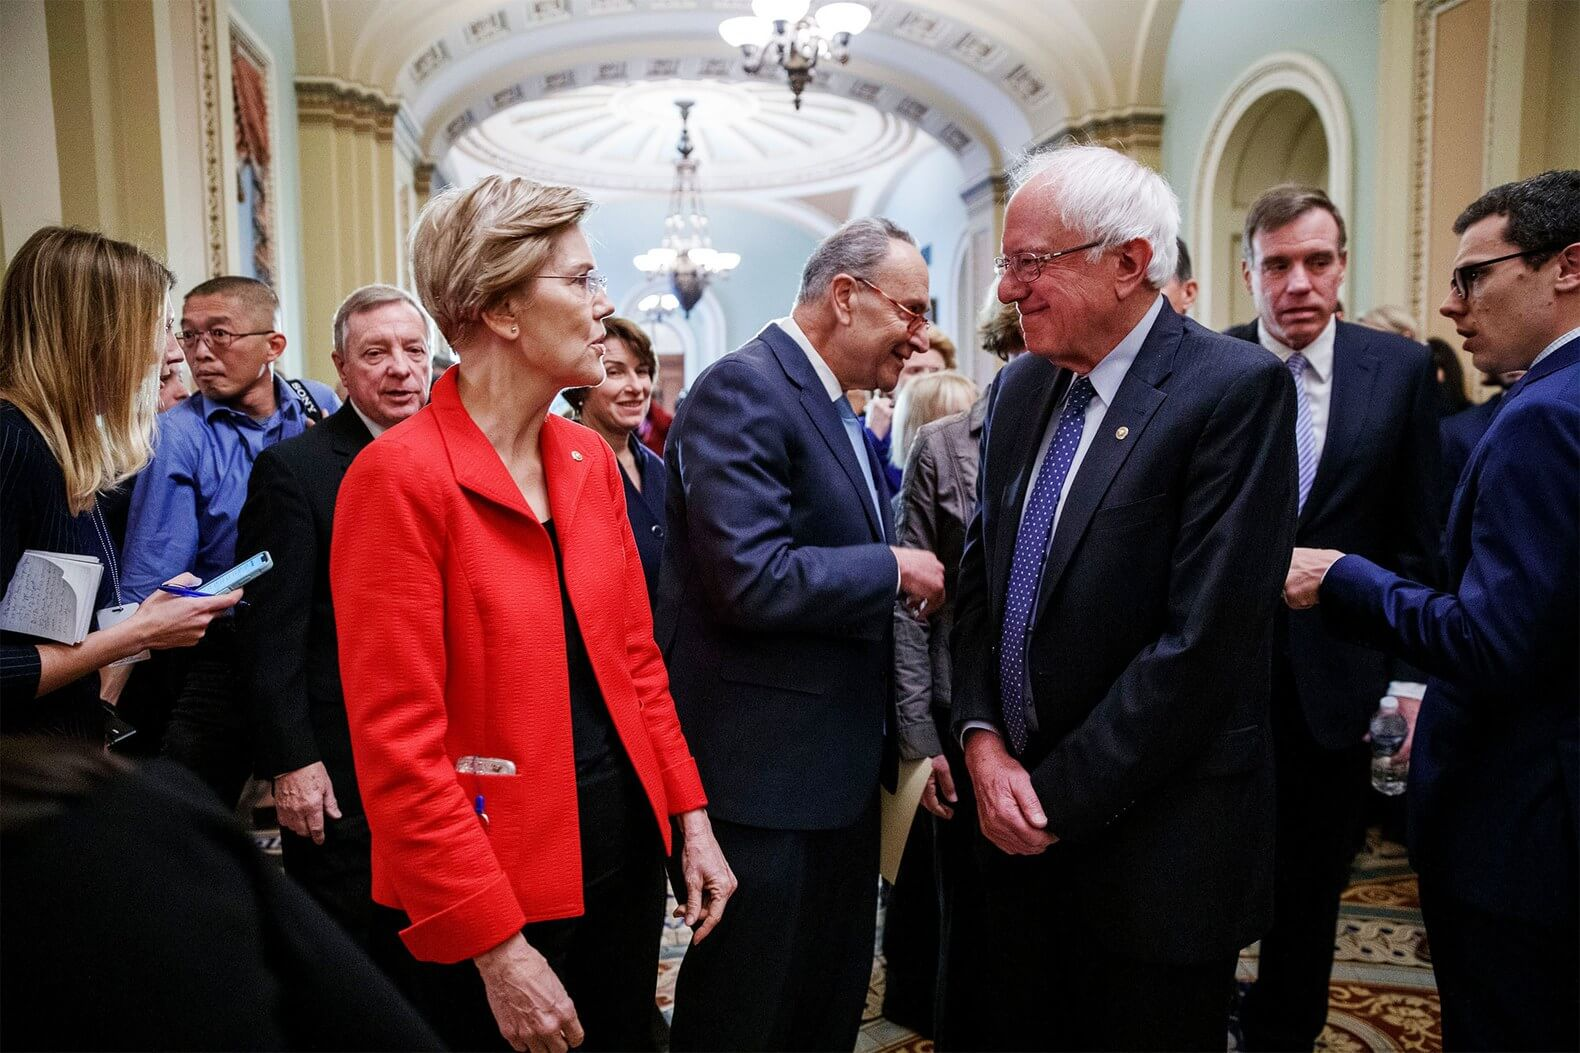 Elizabeth Warren and Bernie Sanders talk following a press conference at the U.S. Capitol. Nov 14, 2018 (Photo: SHAWN THEW/EPA)